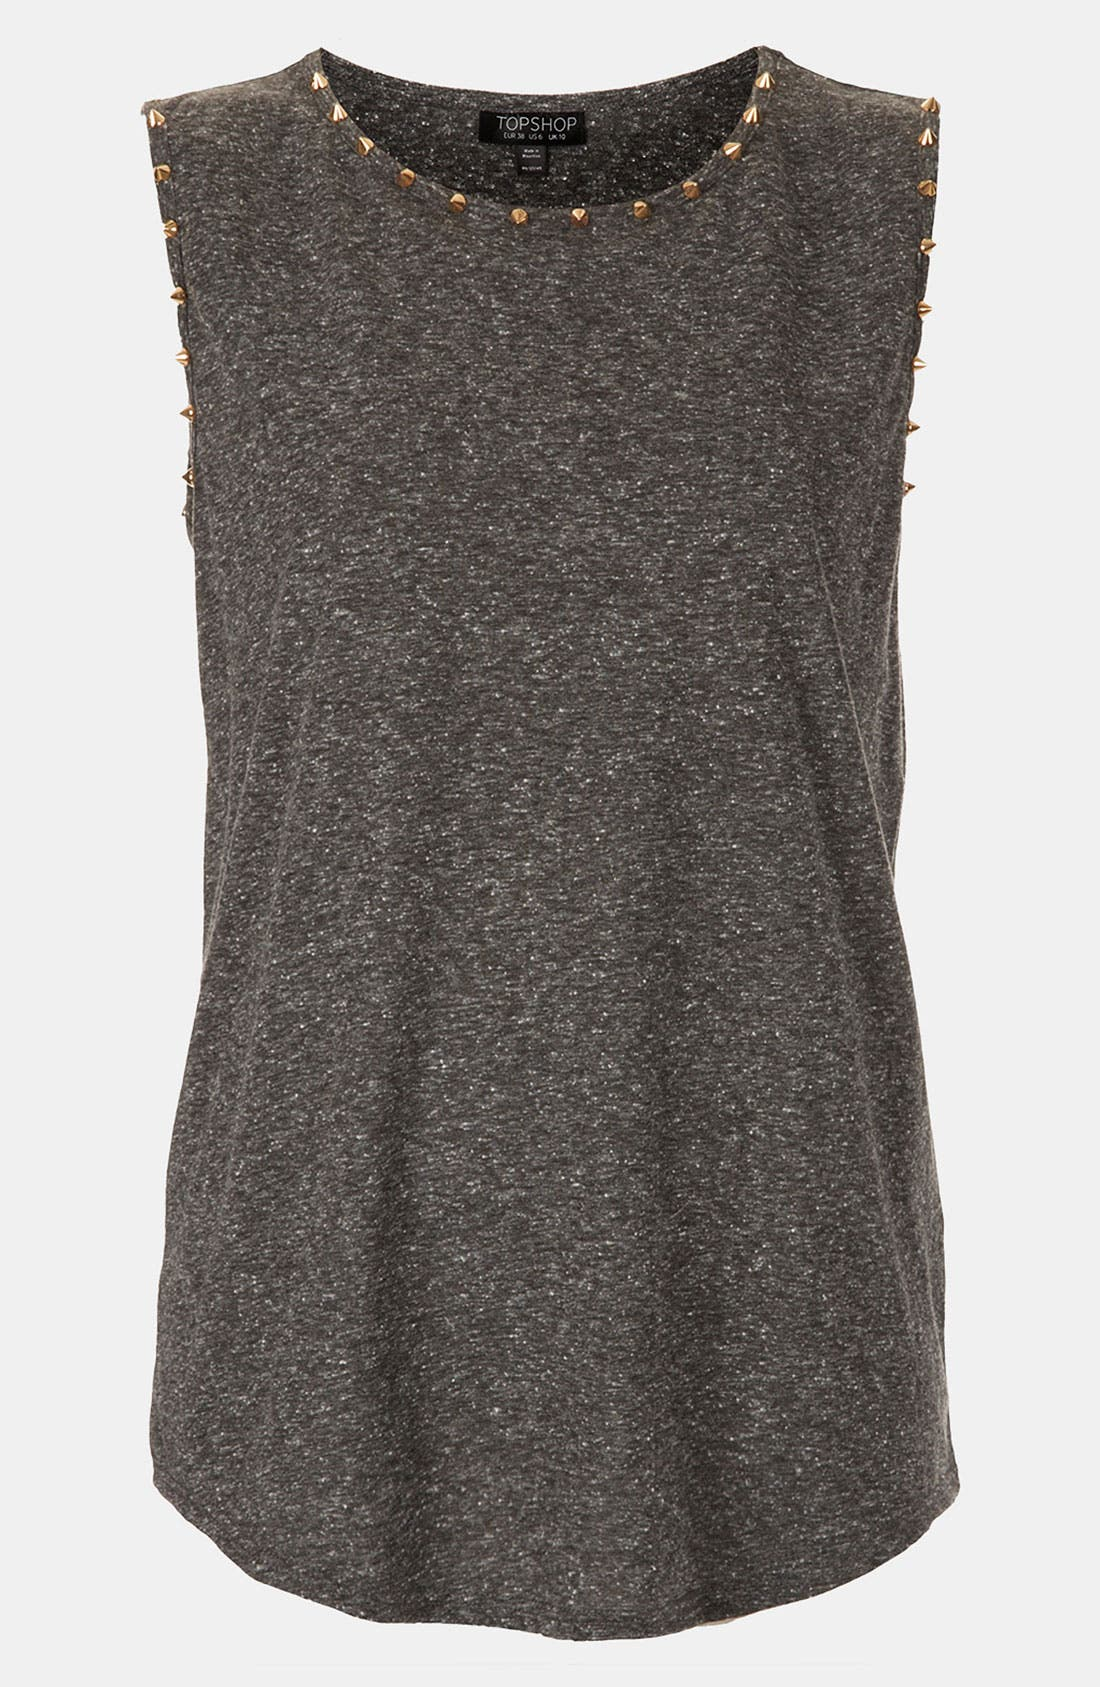 TOPSHOP, Stud Trim Tank, Main thumbnail 1, color, 020